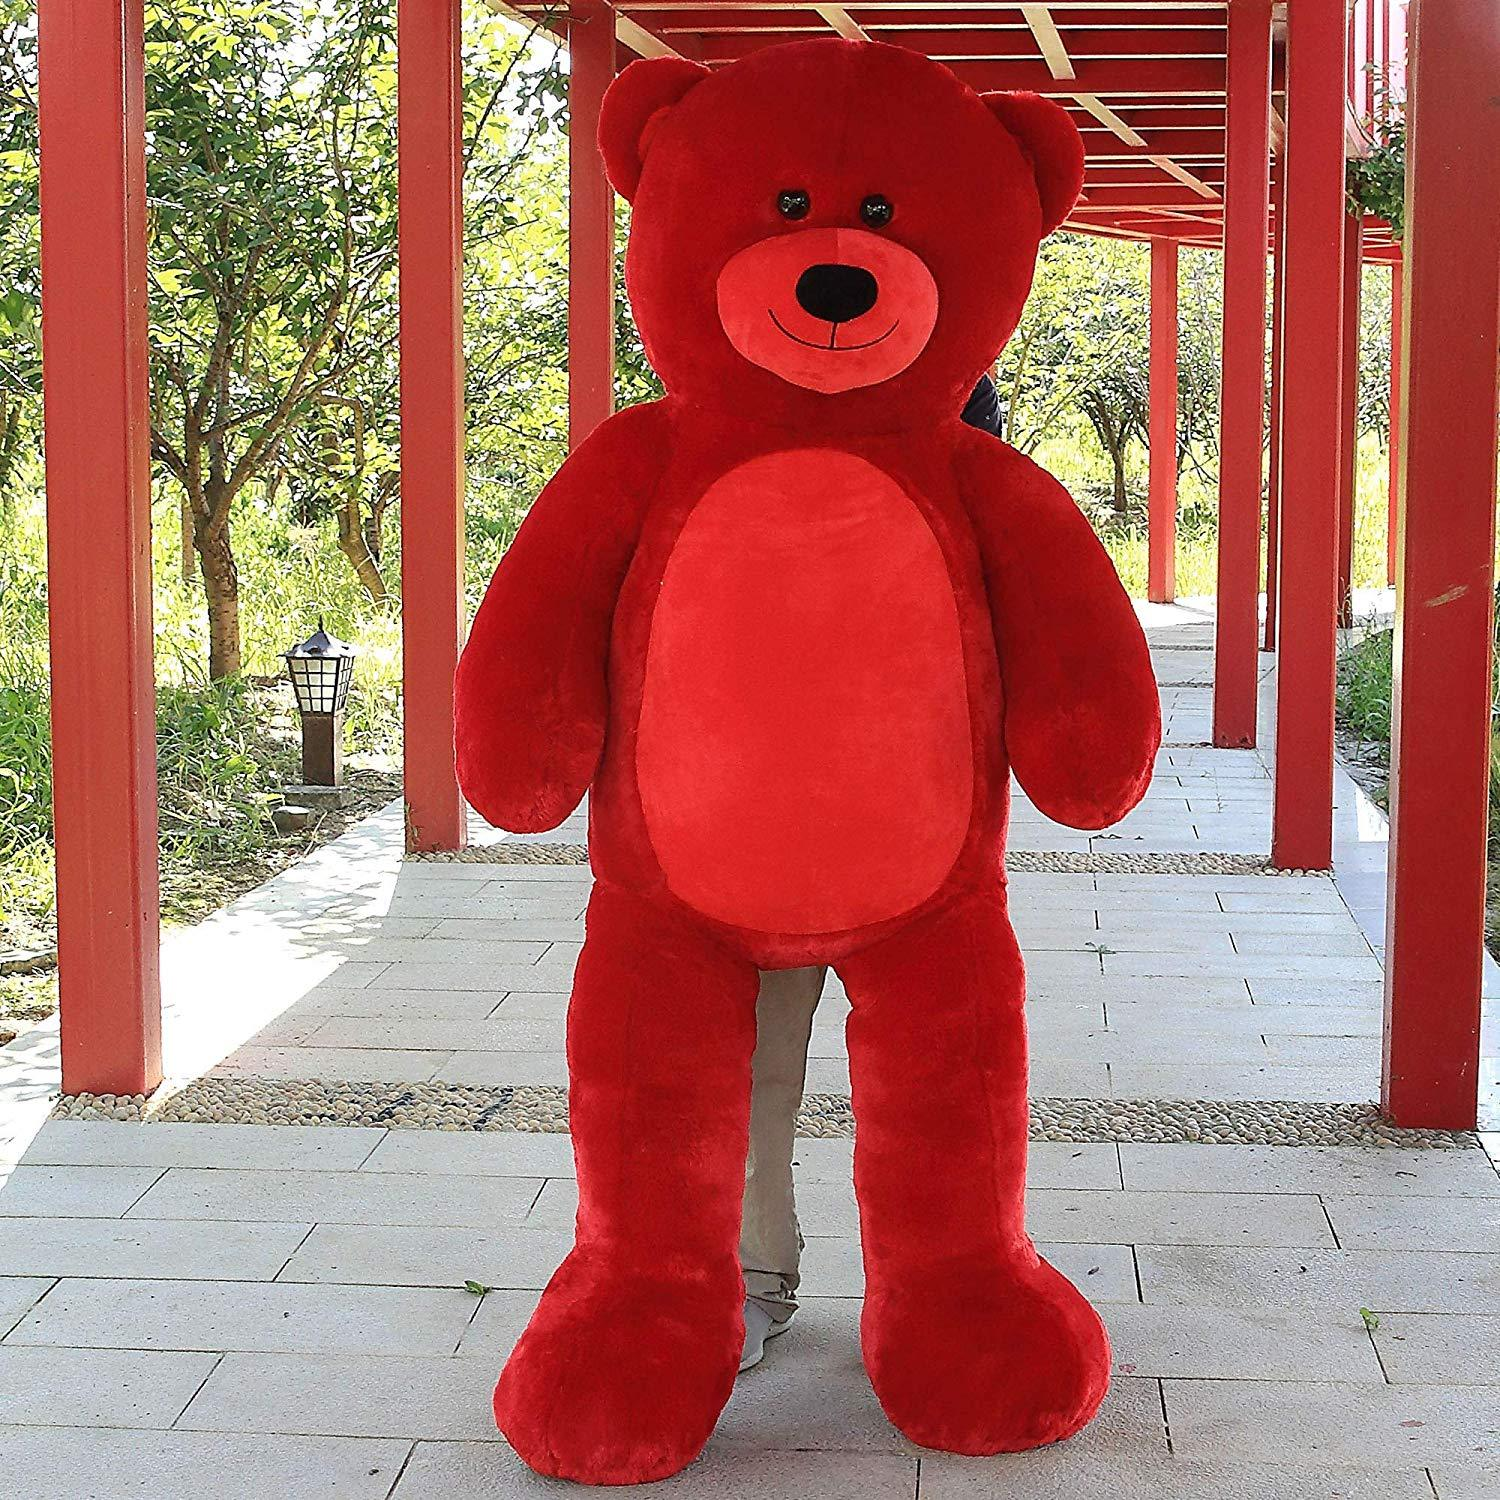 "WOWMAX Unique Red Teddy Bear 72"" Giant Jumbo Stuffed Plush Animal Toy Gift Bear"